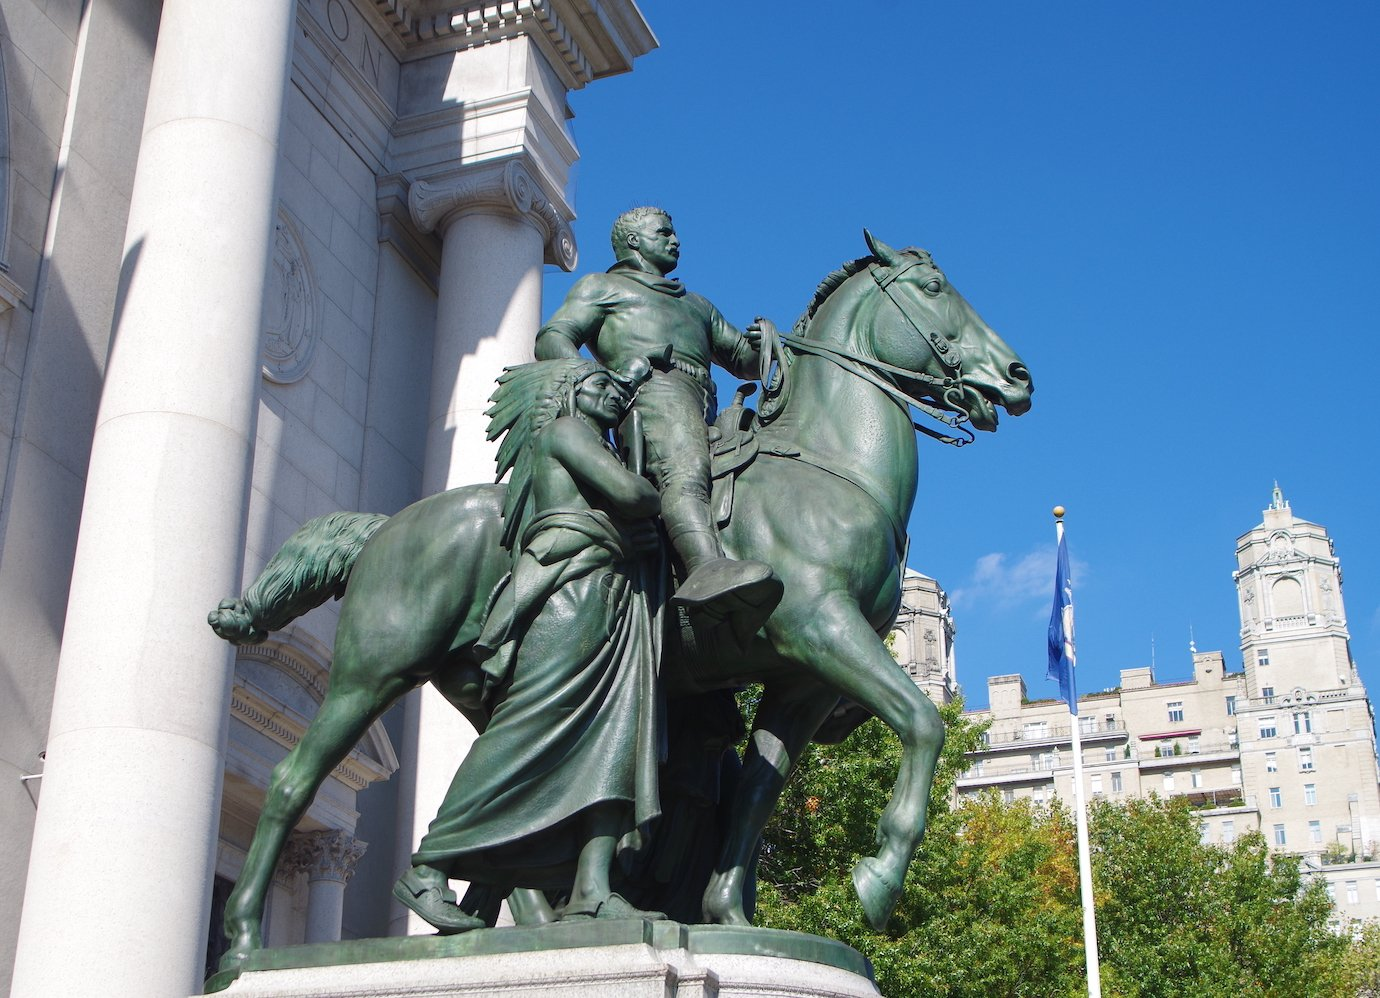 A Russian art collector offers to buy America's controversial statues